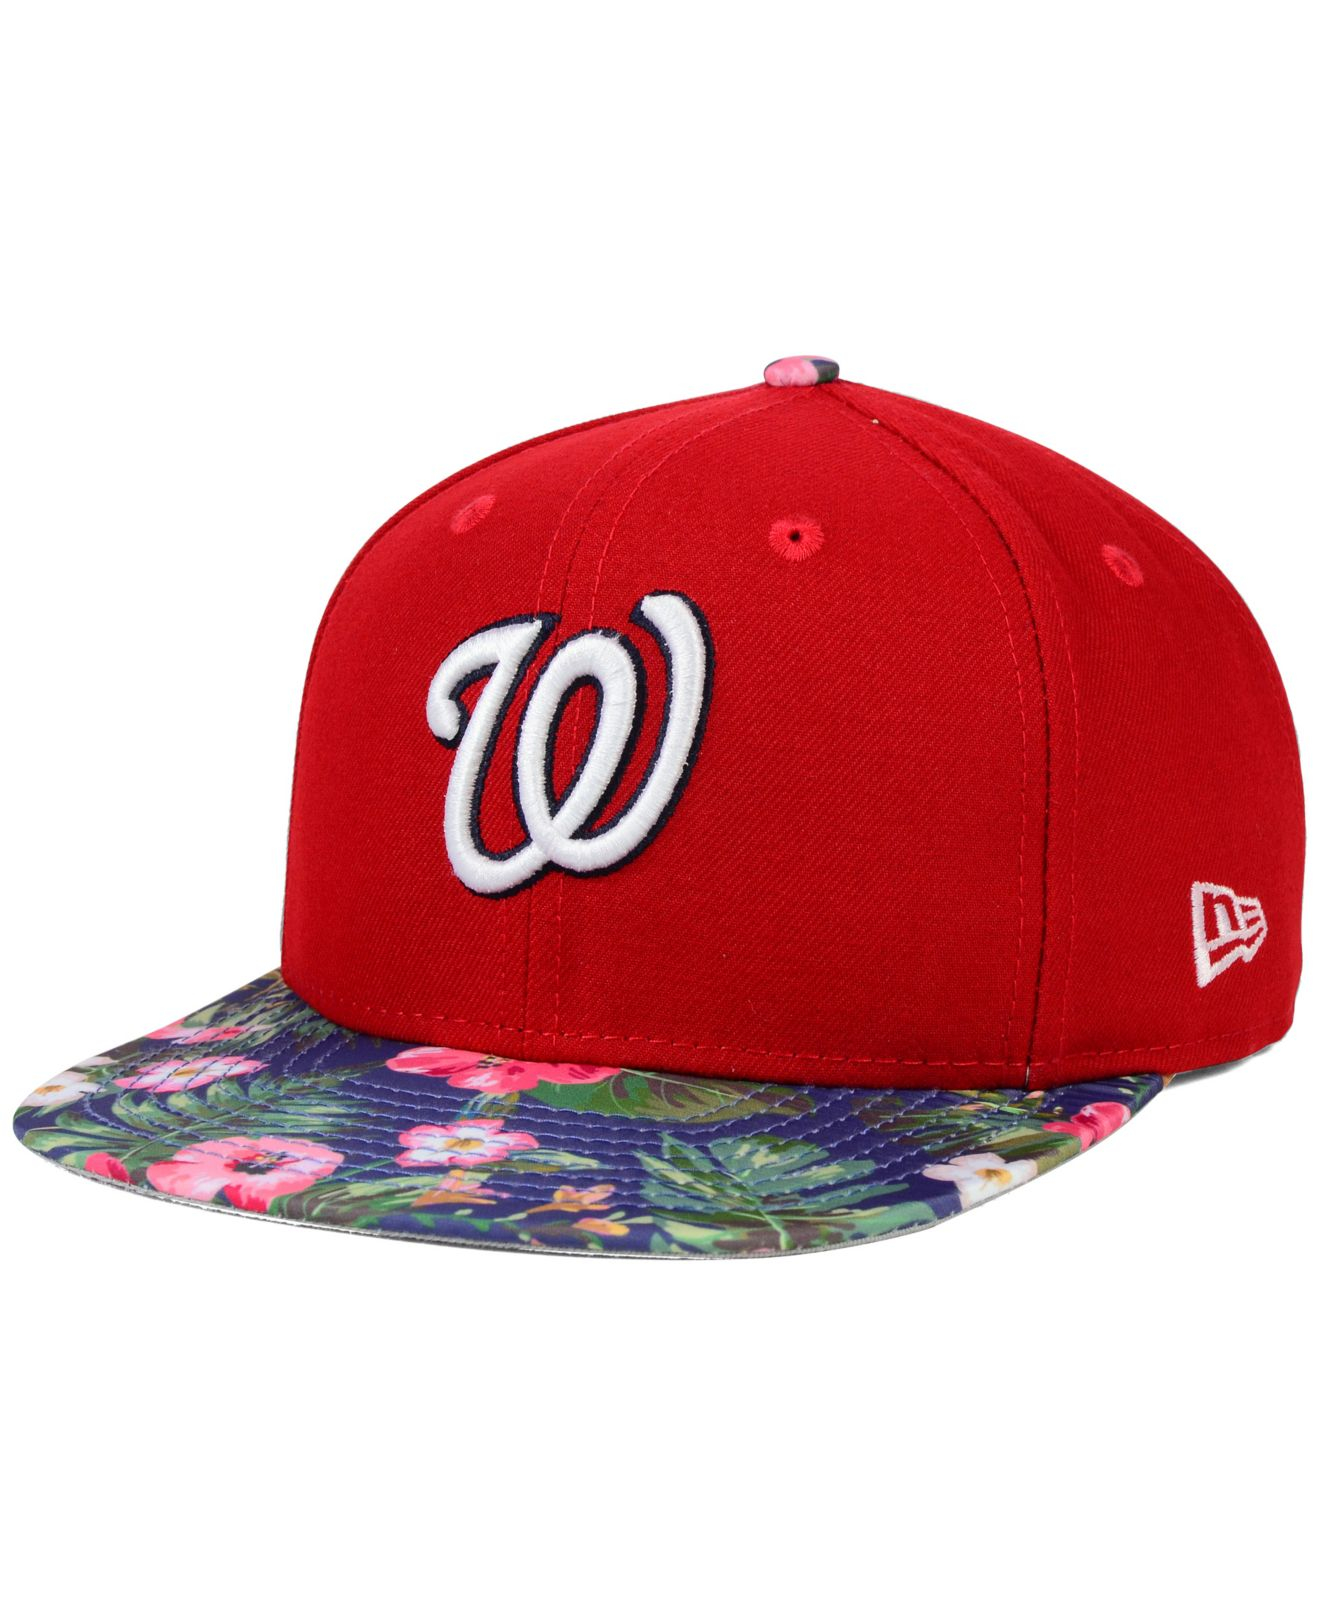 38c0d947b italy washington nationals hat new era 94 115fd 54dc2